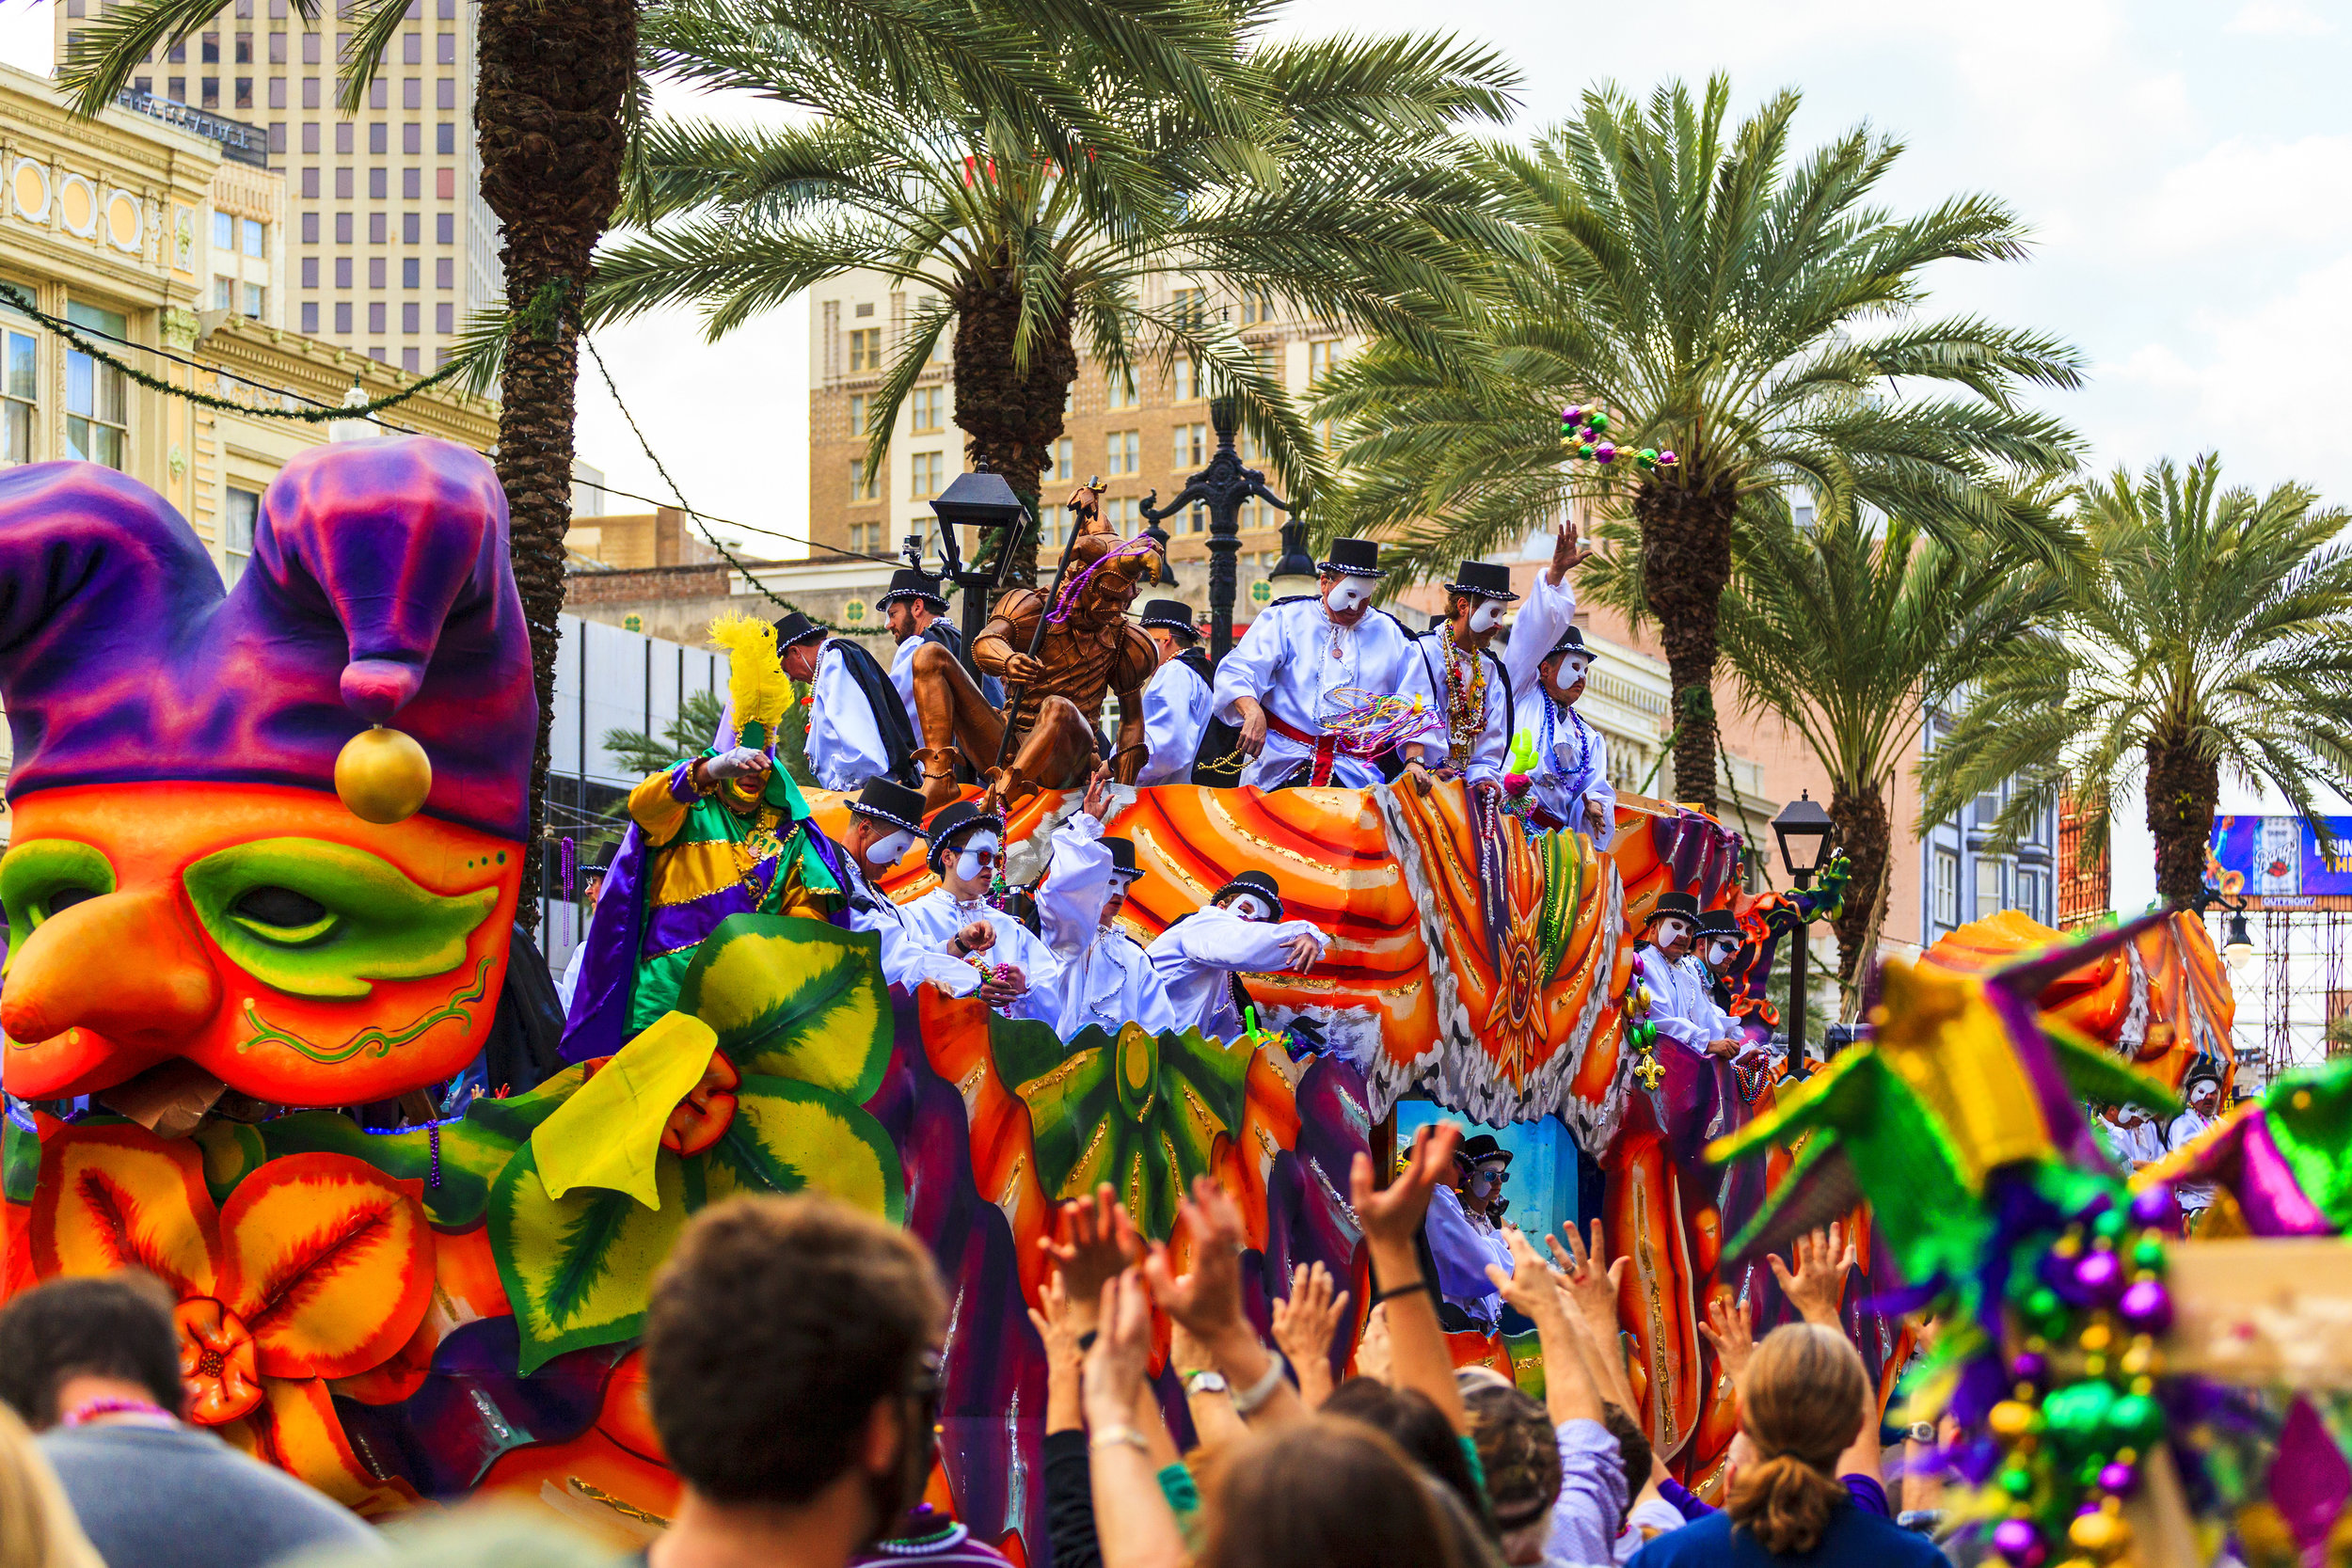 Mardi Gras is the biggest celebration in the city of New Orleans.